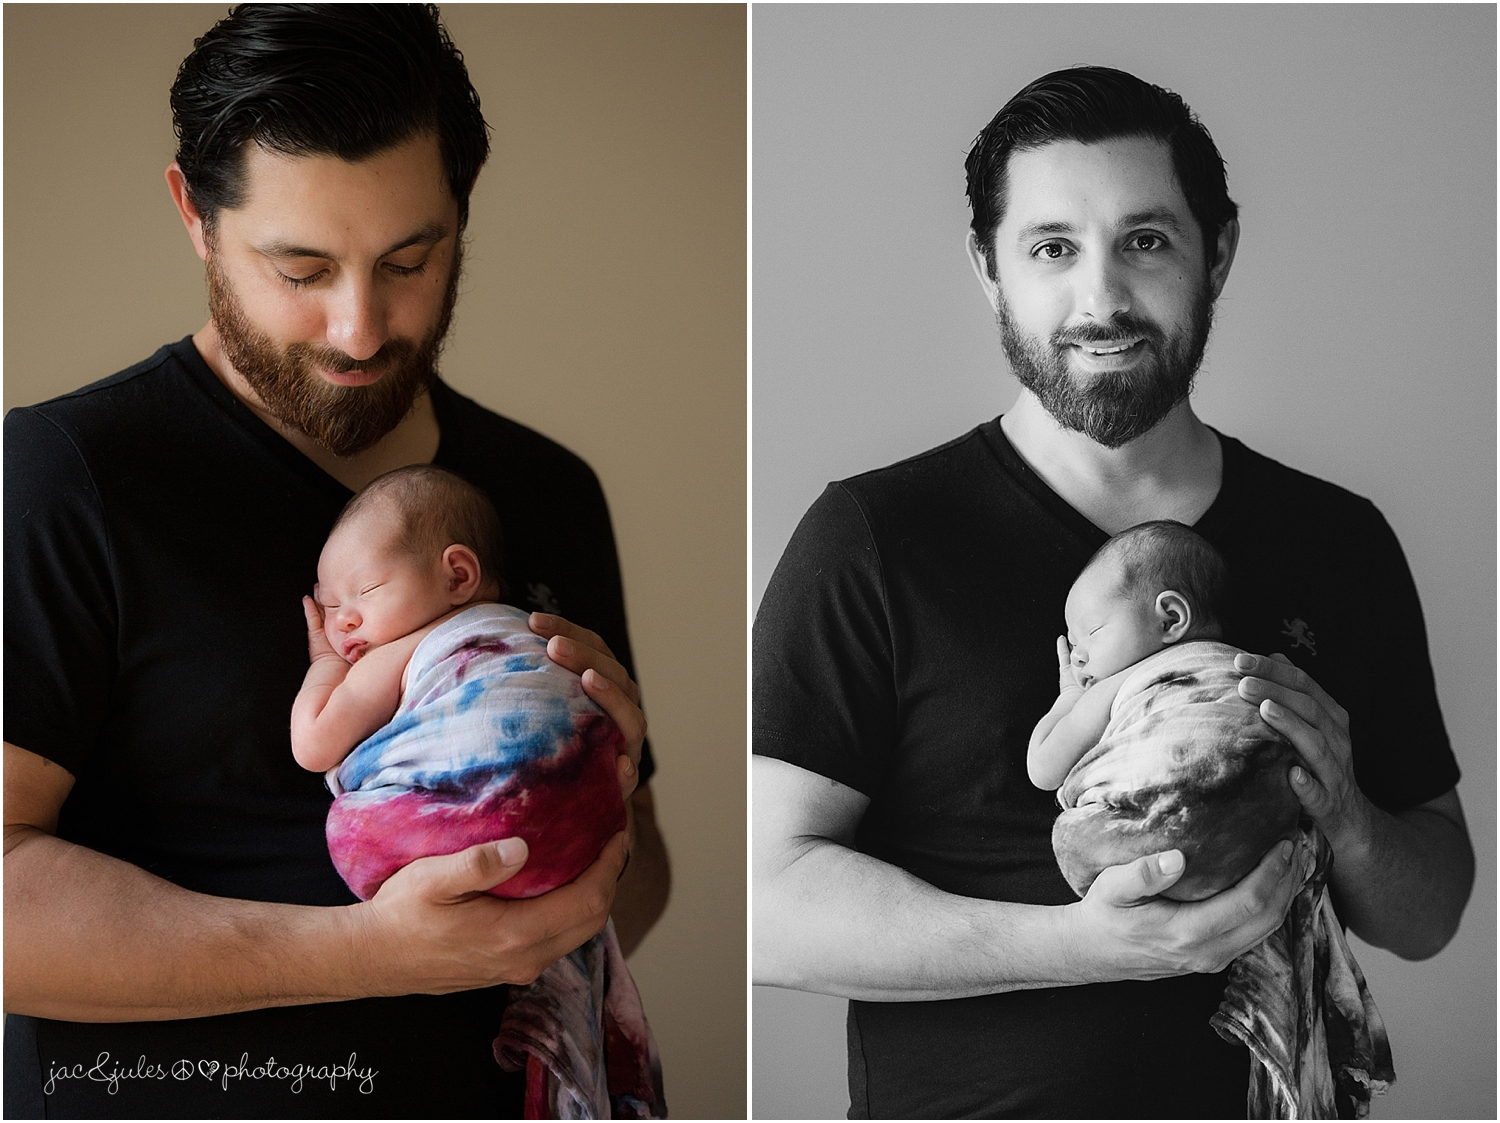 jacnjules photographs newborn baby girl and dad in their home in nnj